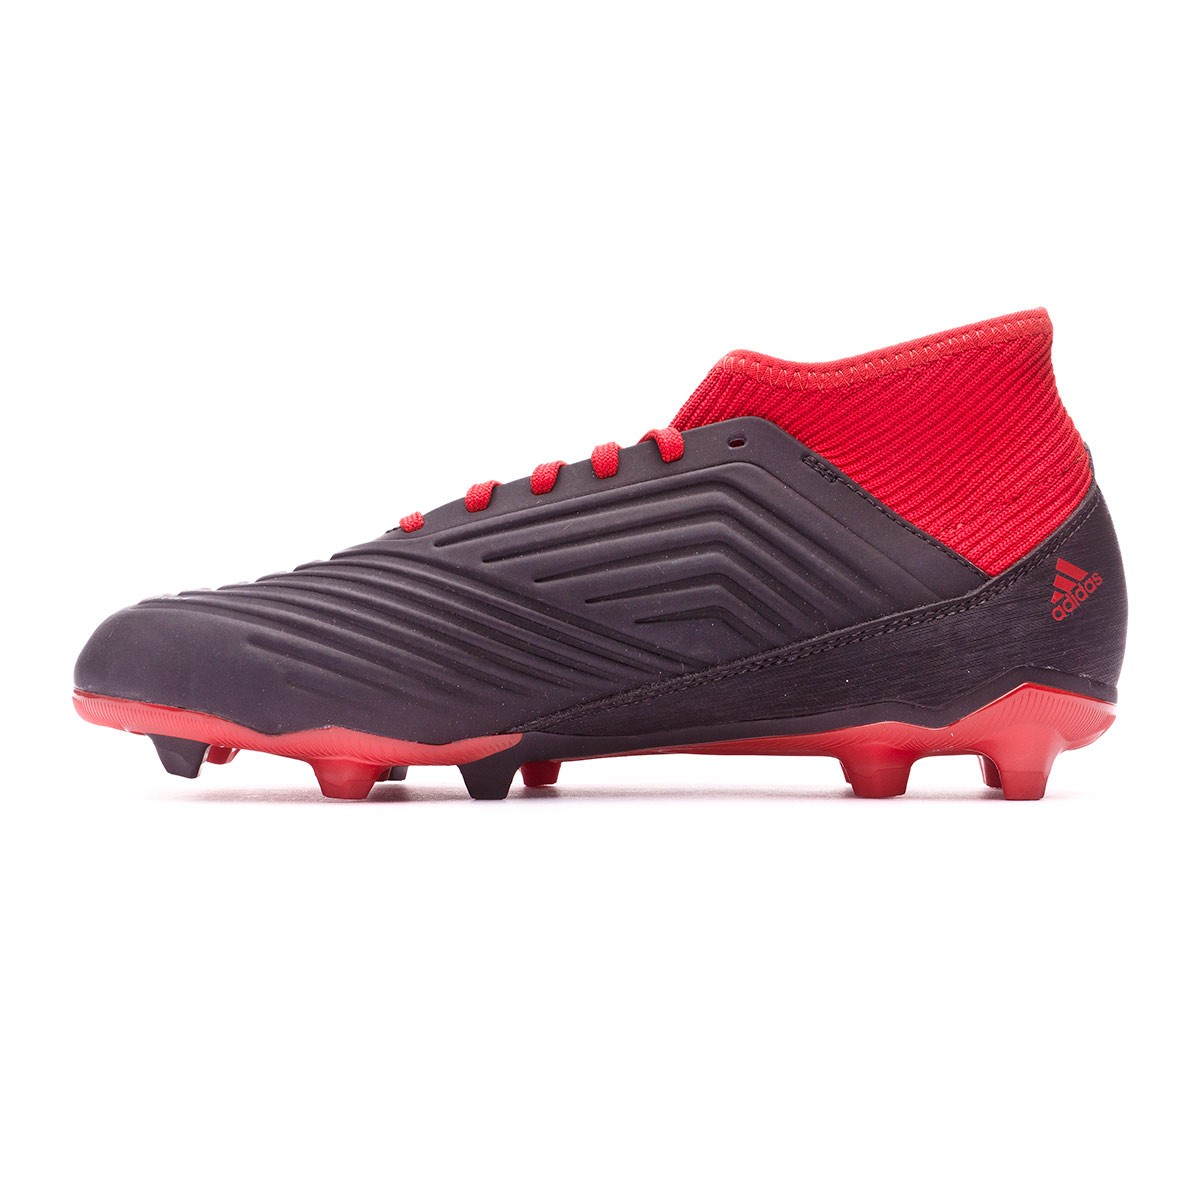 8584968a5807e Football Boots adidas Kids Predator 18.3 FG Core black-White-Red - Tienda  de fútbol Fútbol Emotion